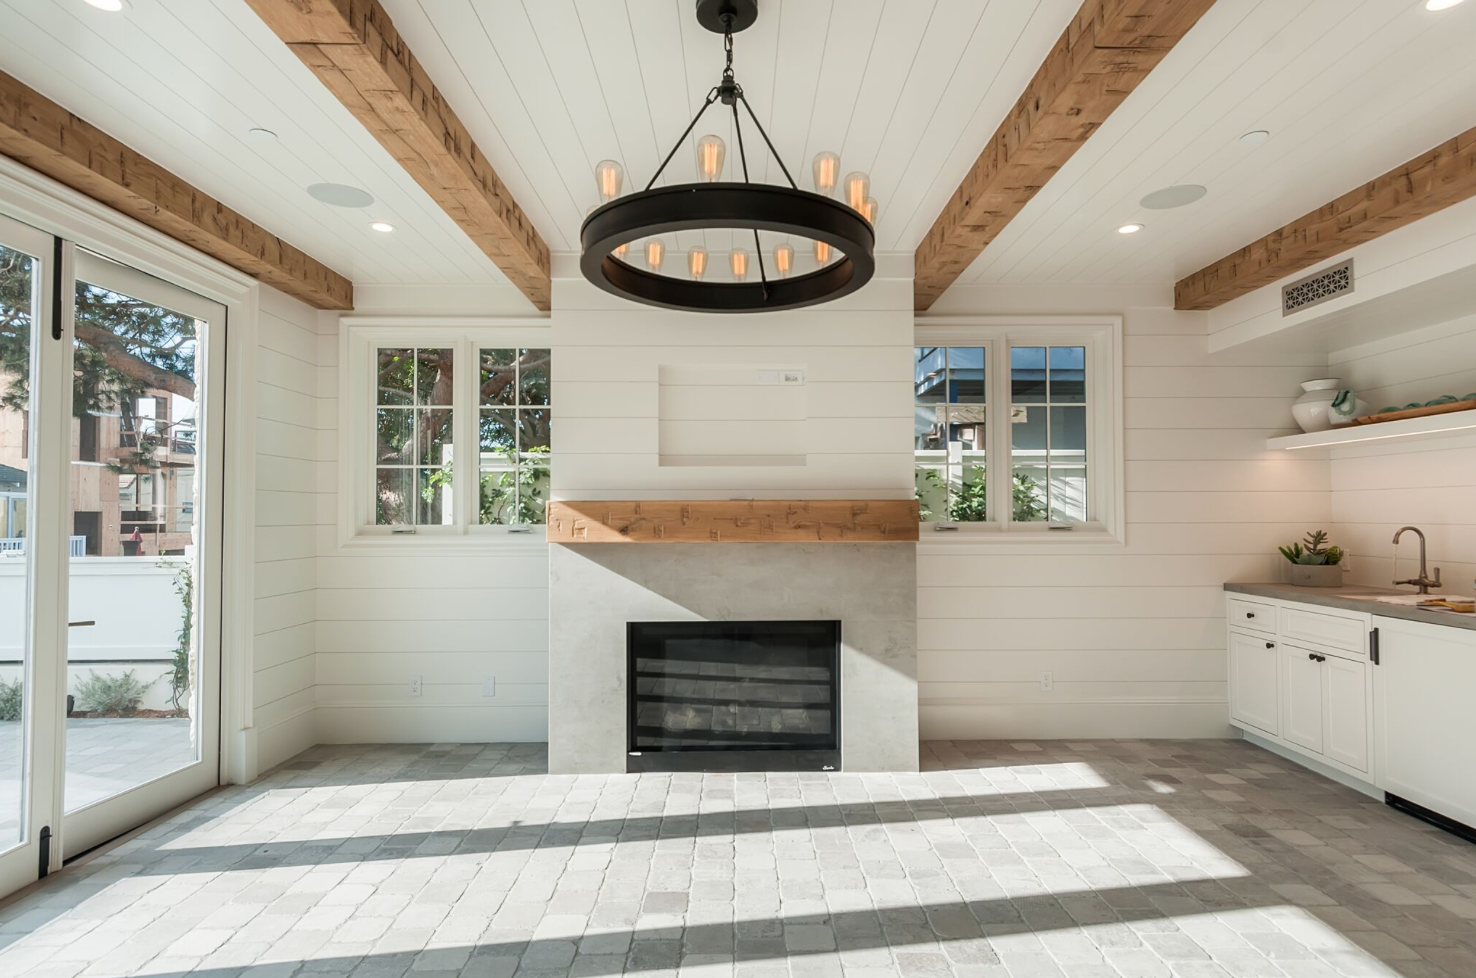 When working in a monochromatic palette, the ceiling is a great place to add some visual interest, drawing the eye up. Beams, shiplap, and custom millwork subtly define this home's coastal farmhouse style.